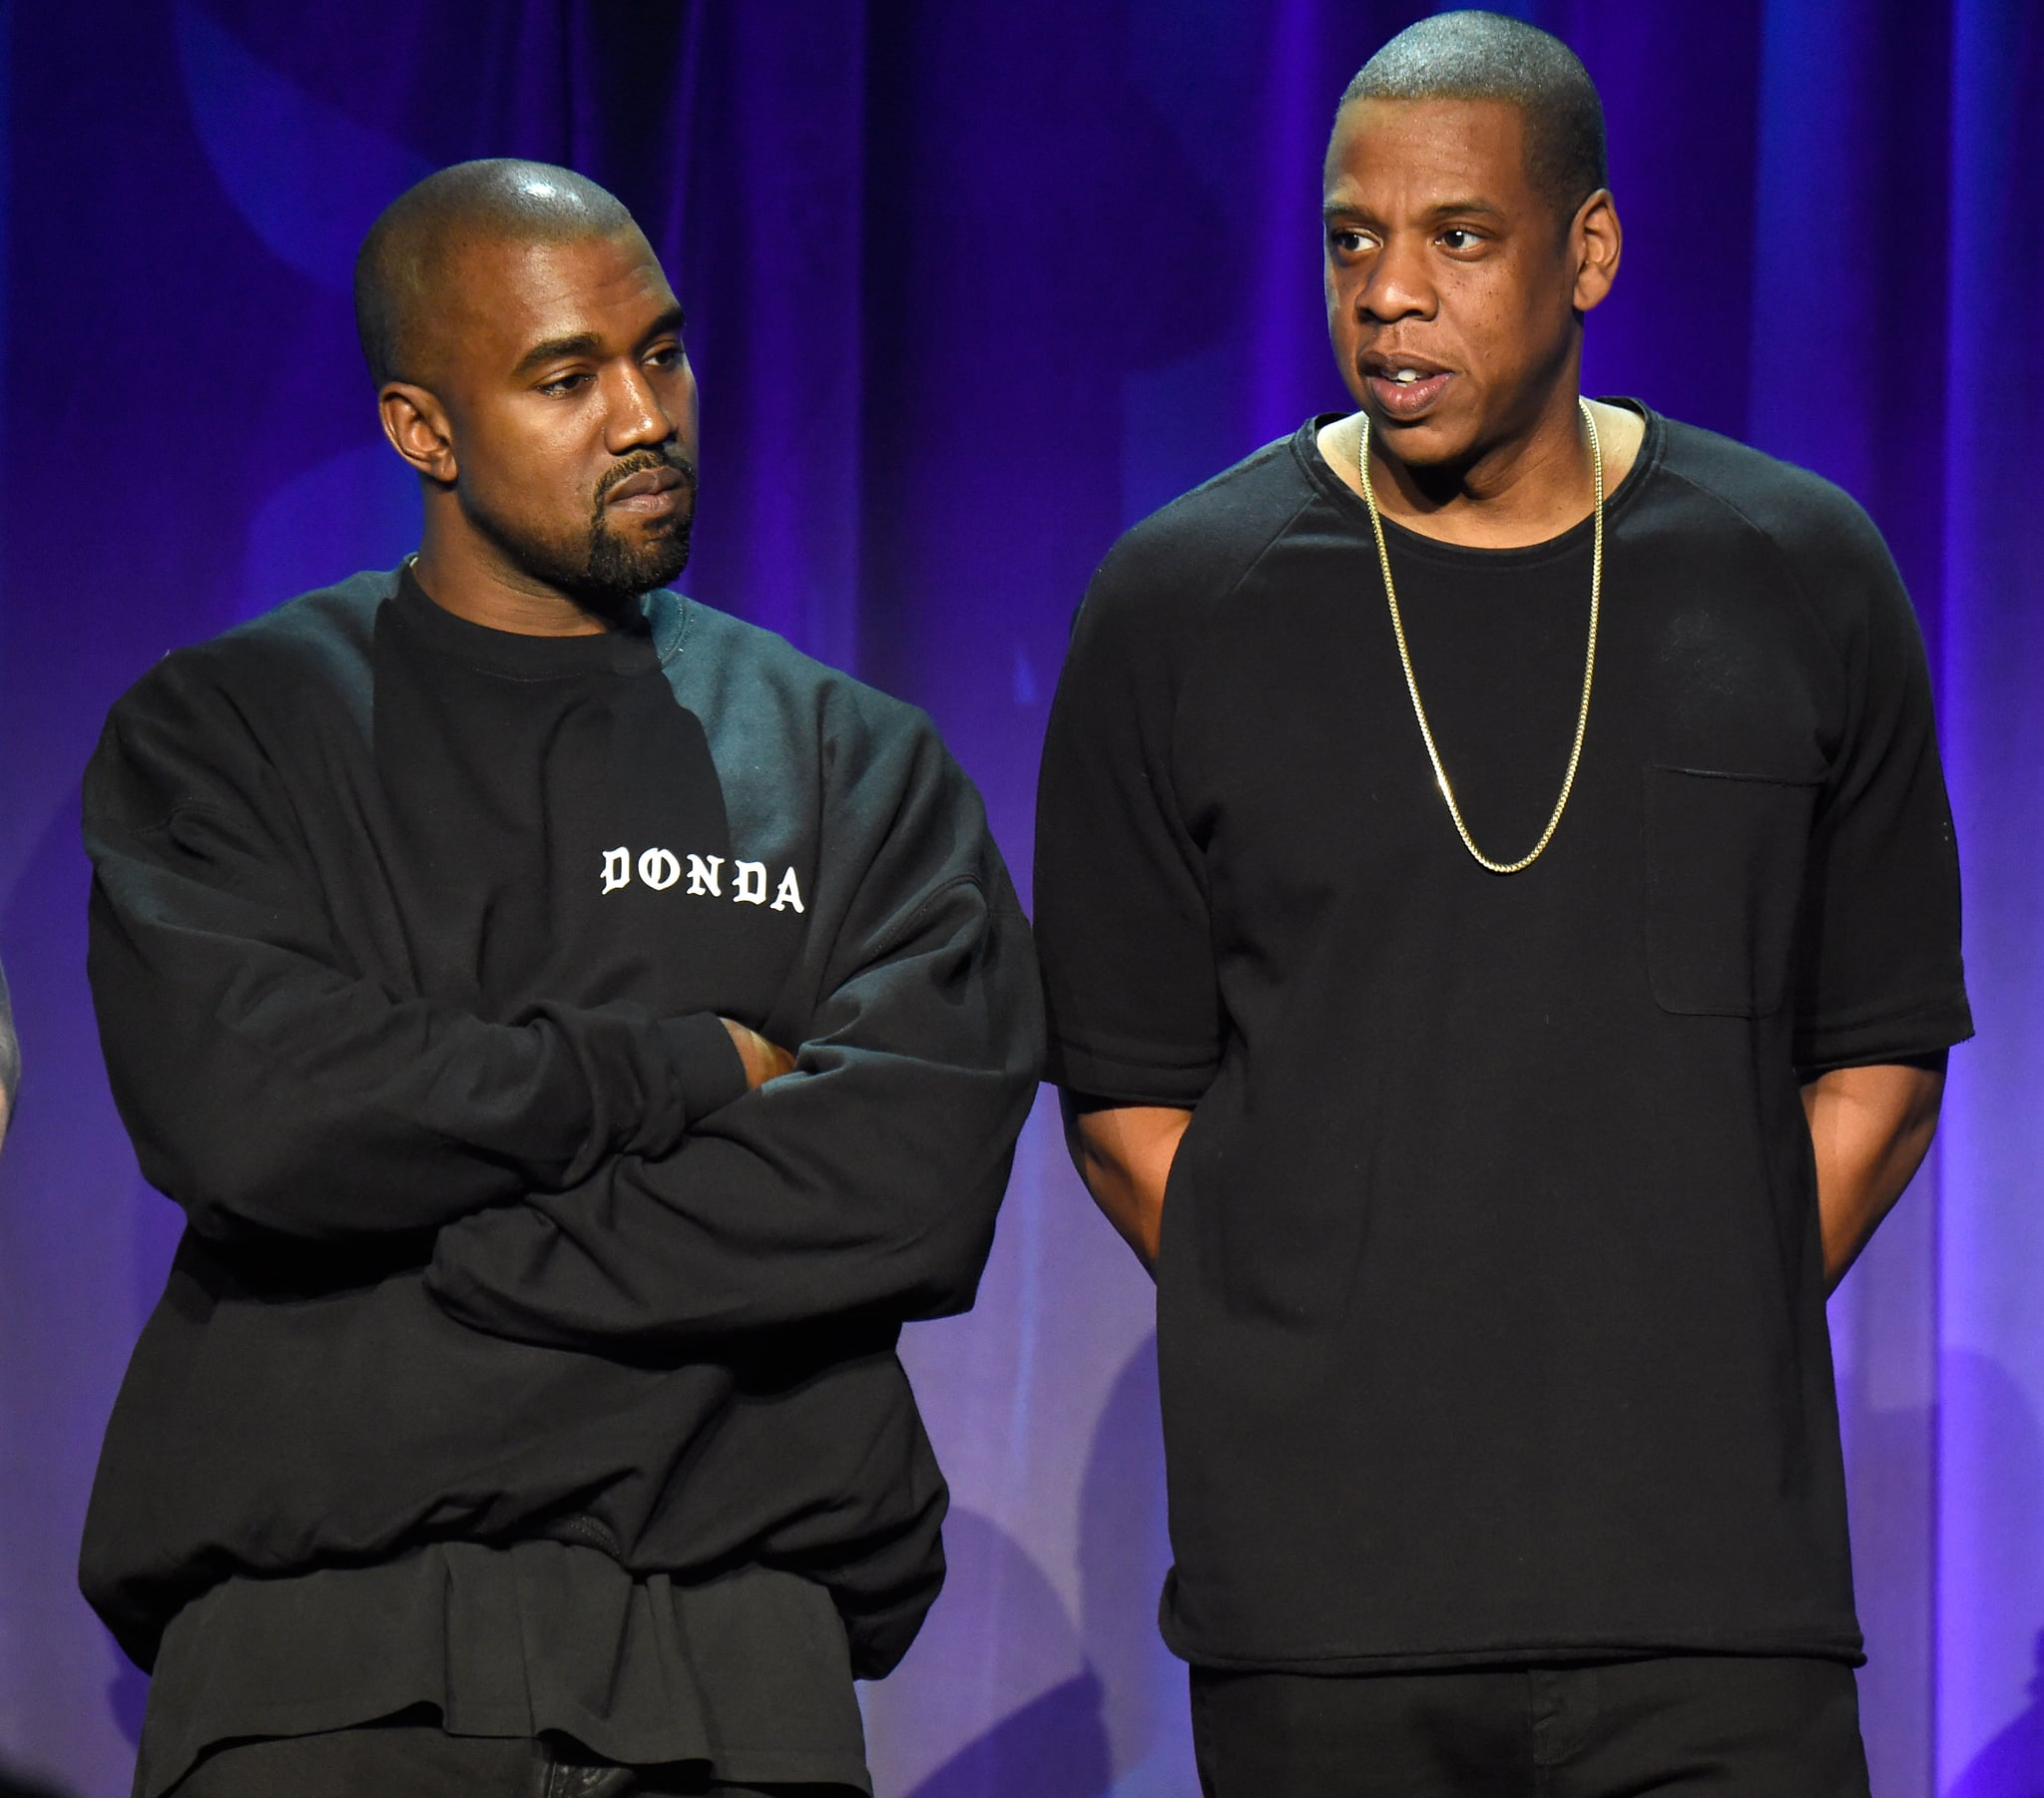 Kanye West Leaves Tidal Following JAY-Z's New Song About Him